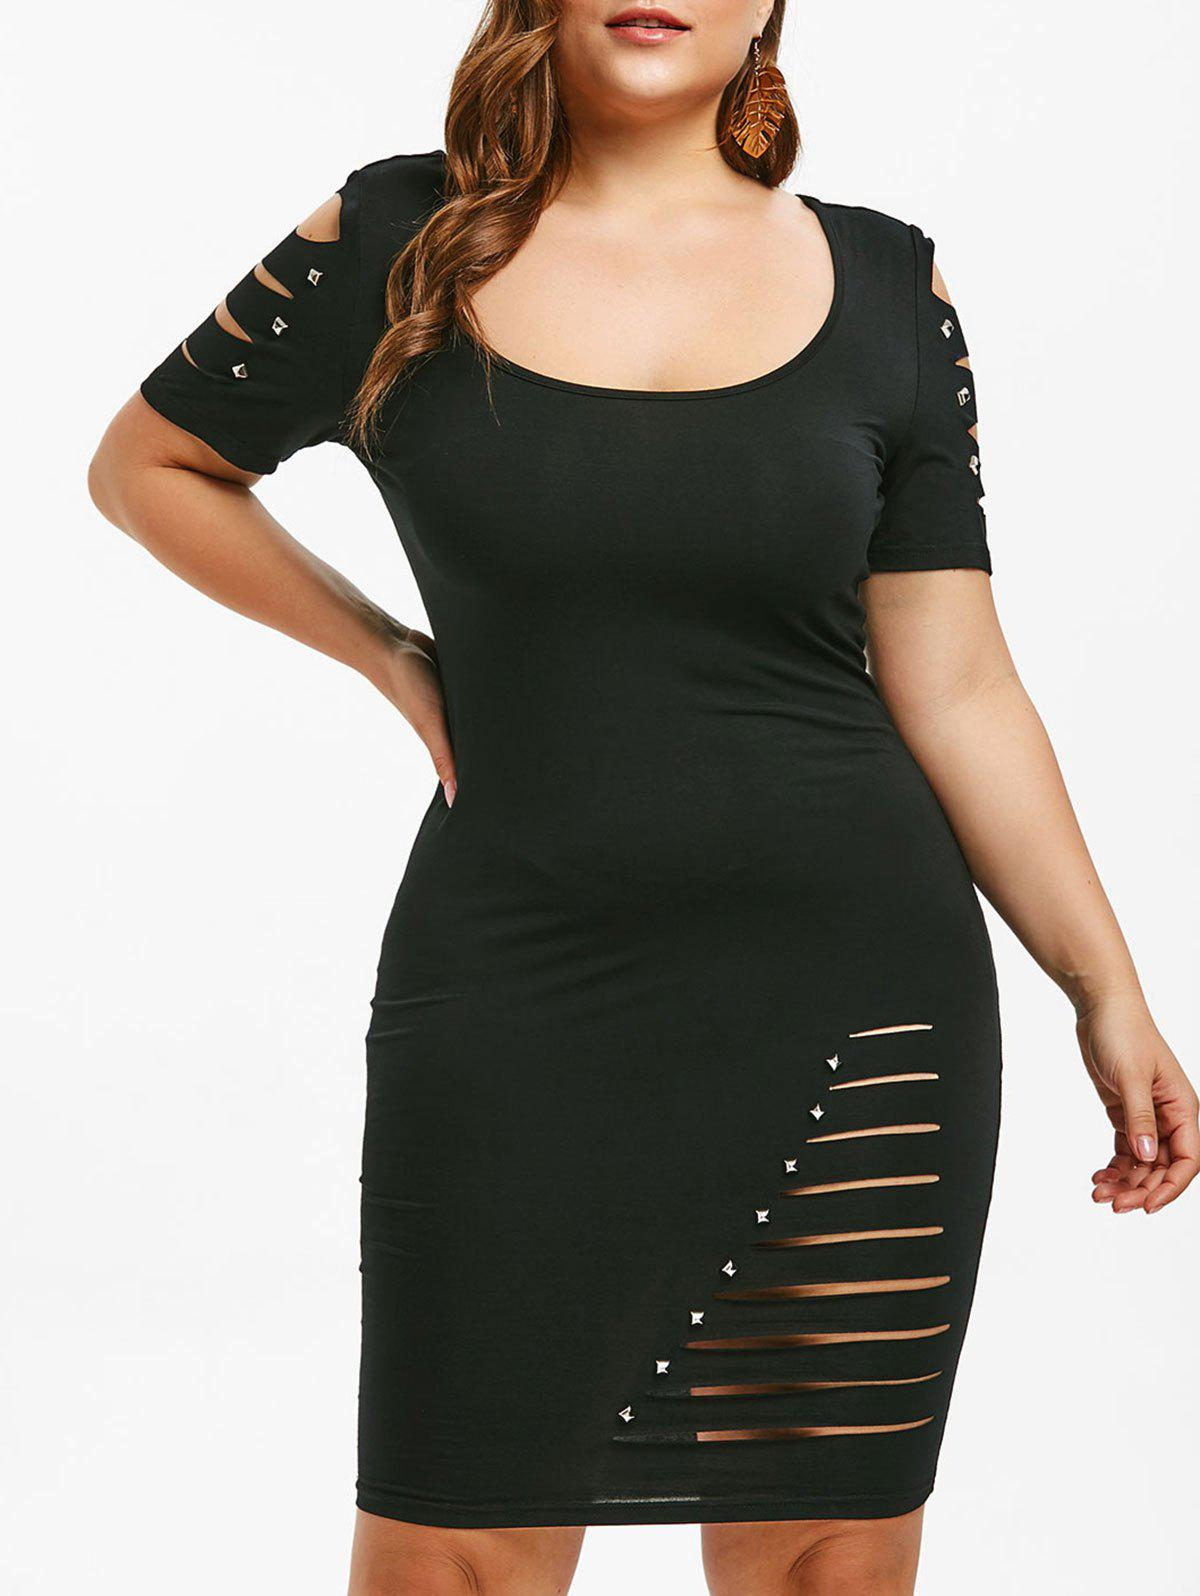 Fancy Ripped Rivet Plus Size Bodycon Dress